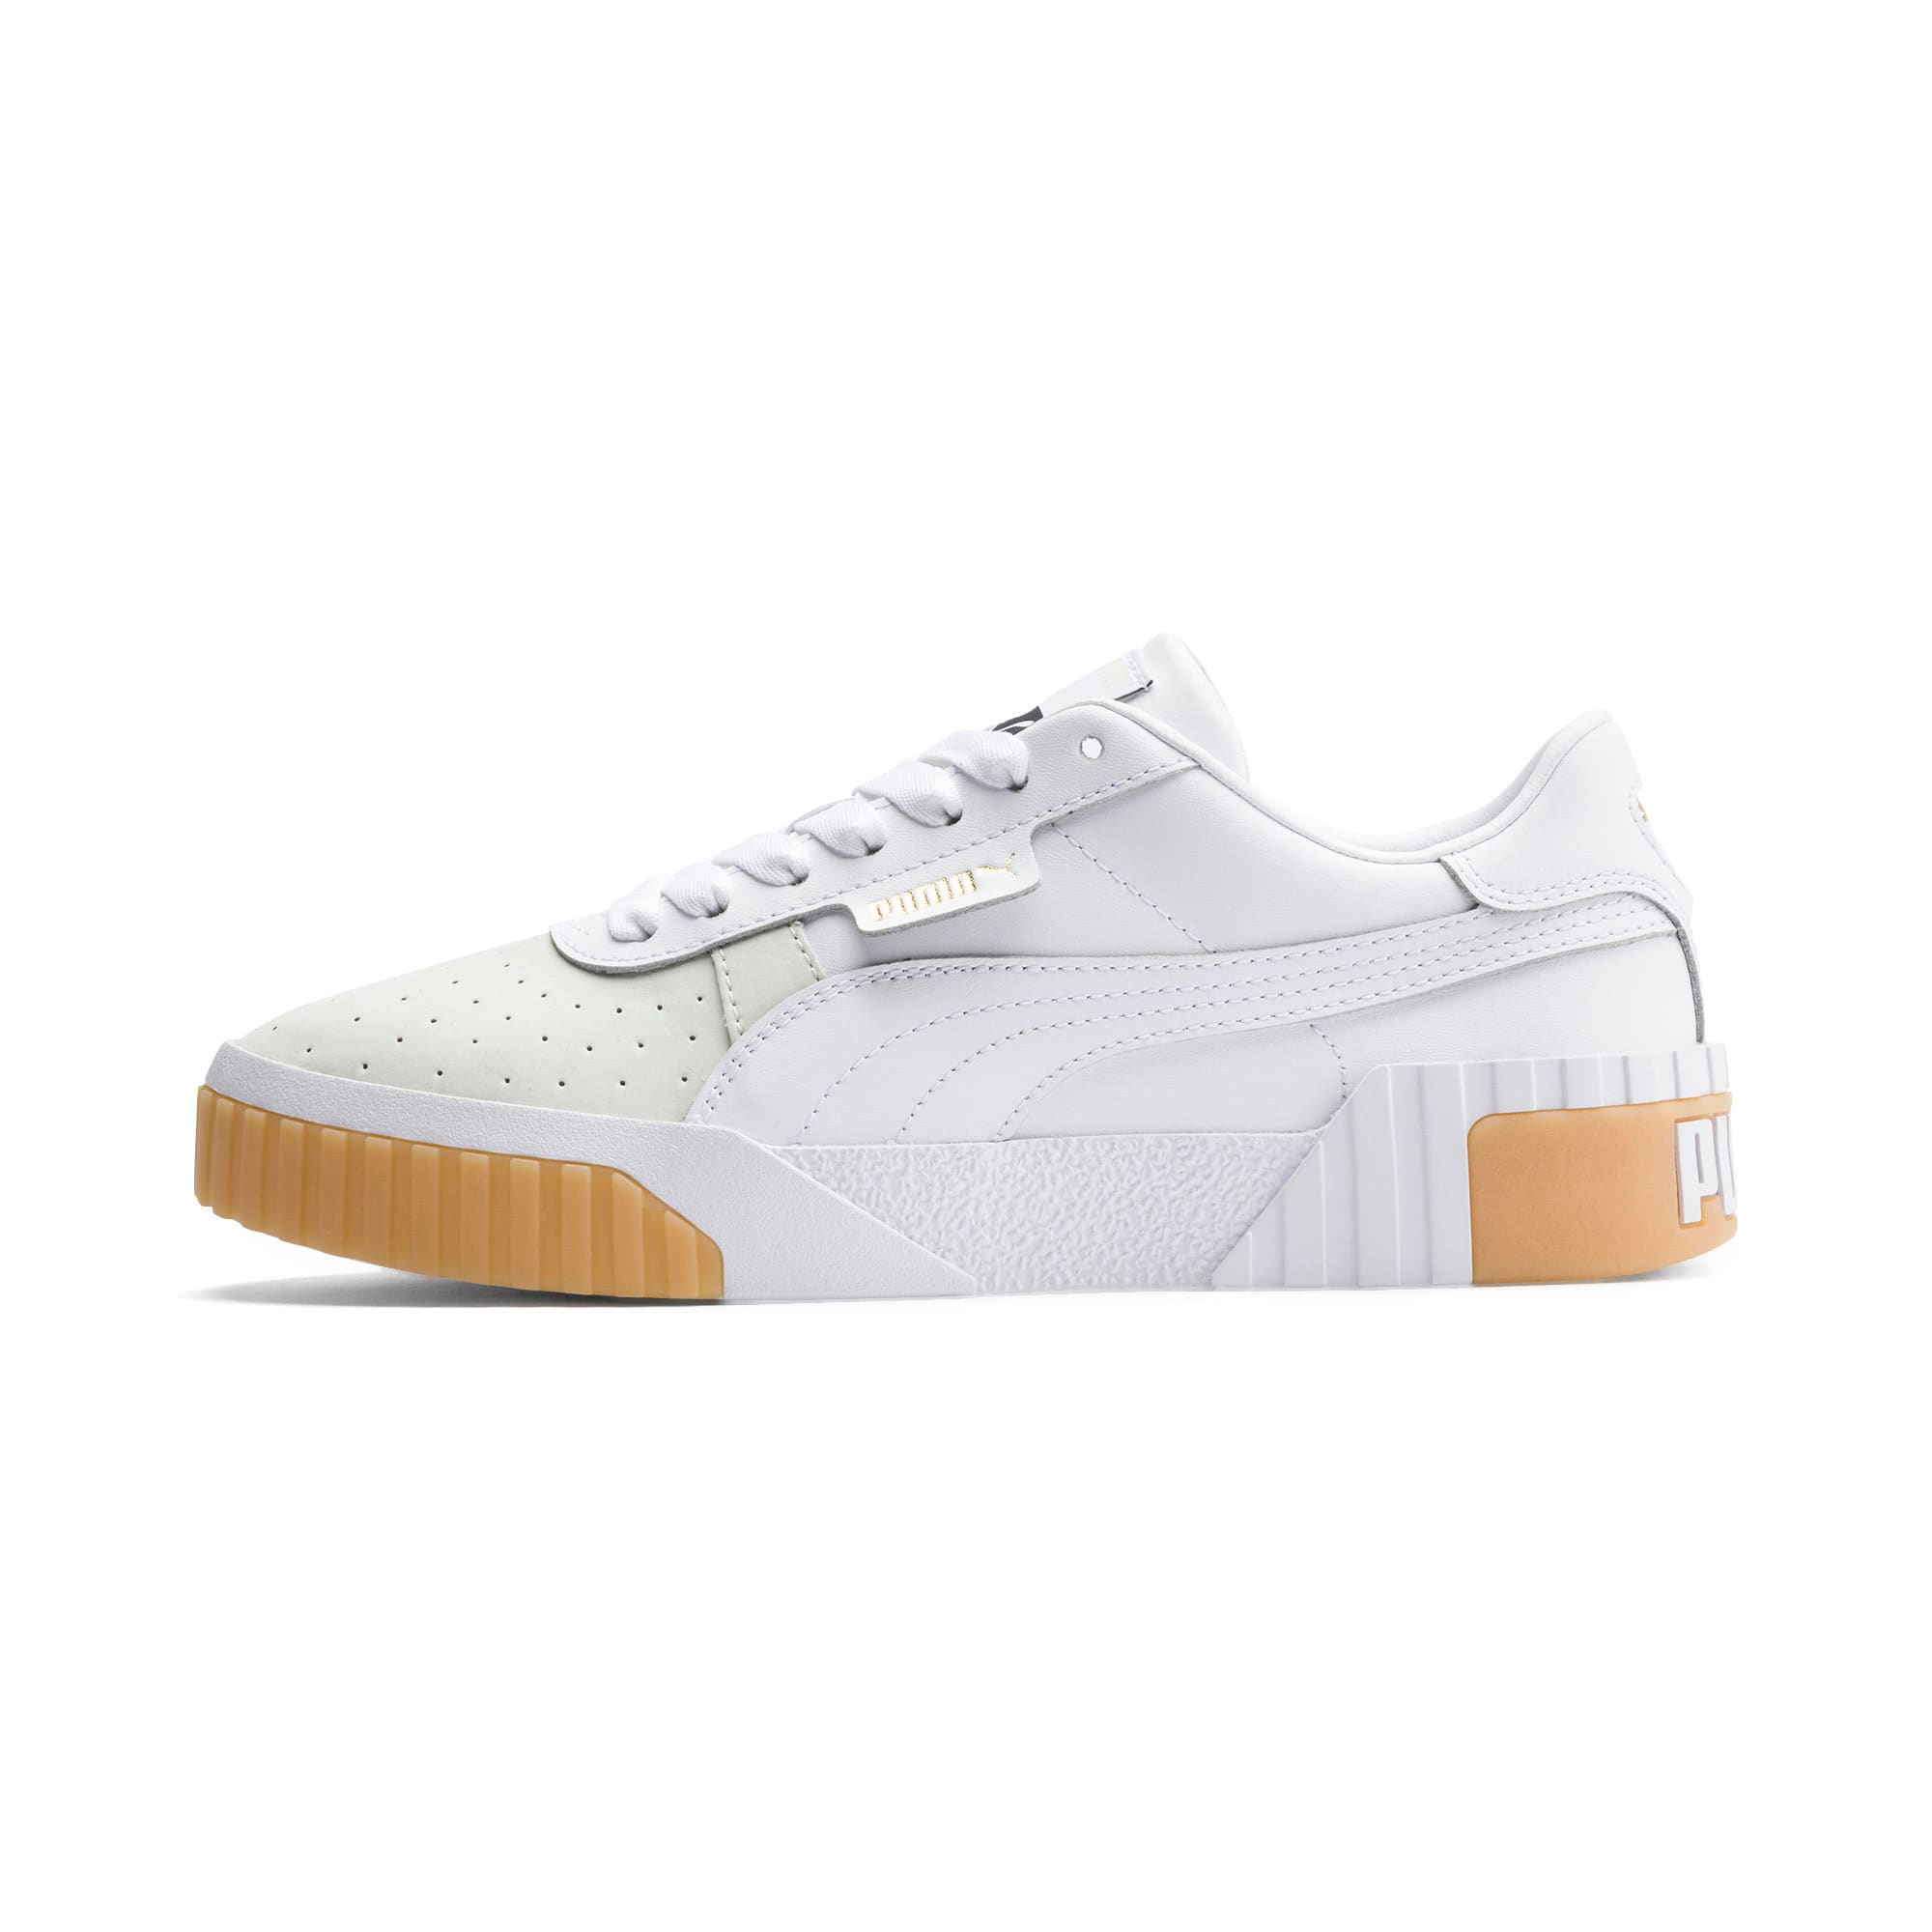 Thumbnail 1 of Zapatillas de mujer Cali Exotic, Puma White-Puma White, medium